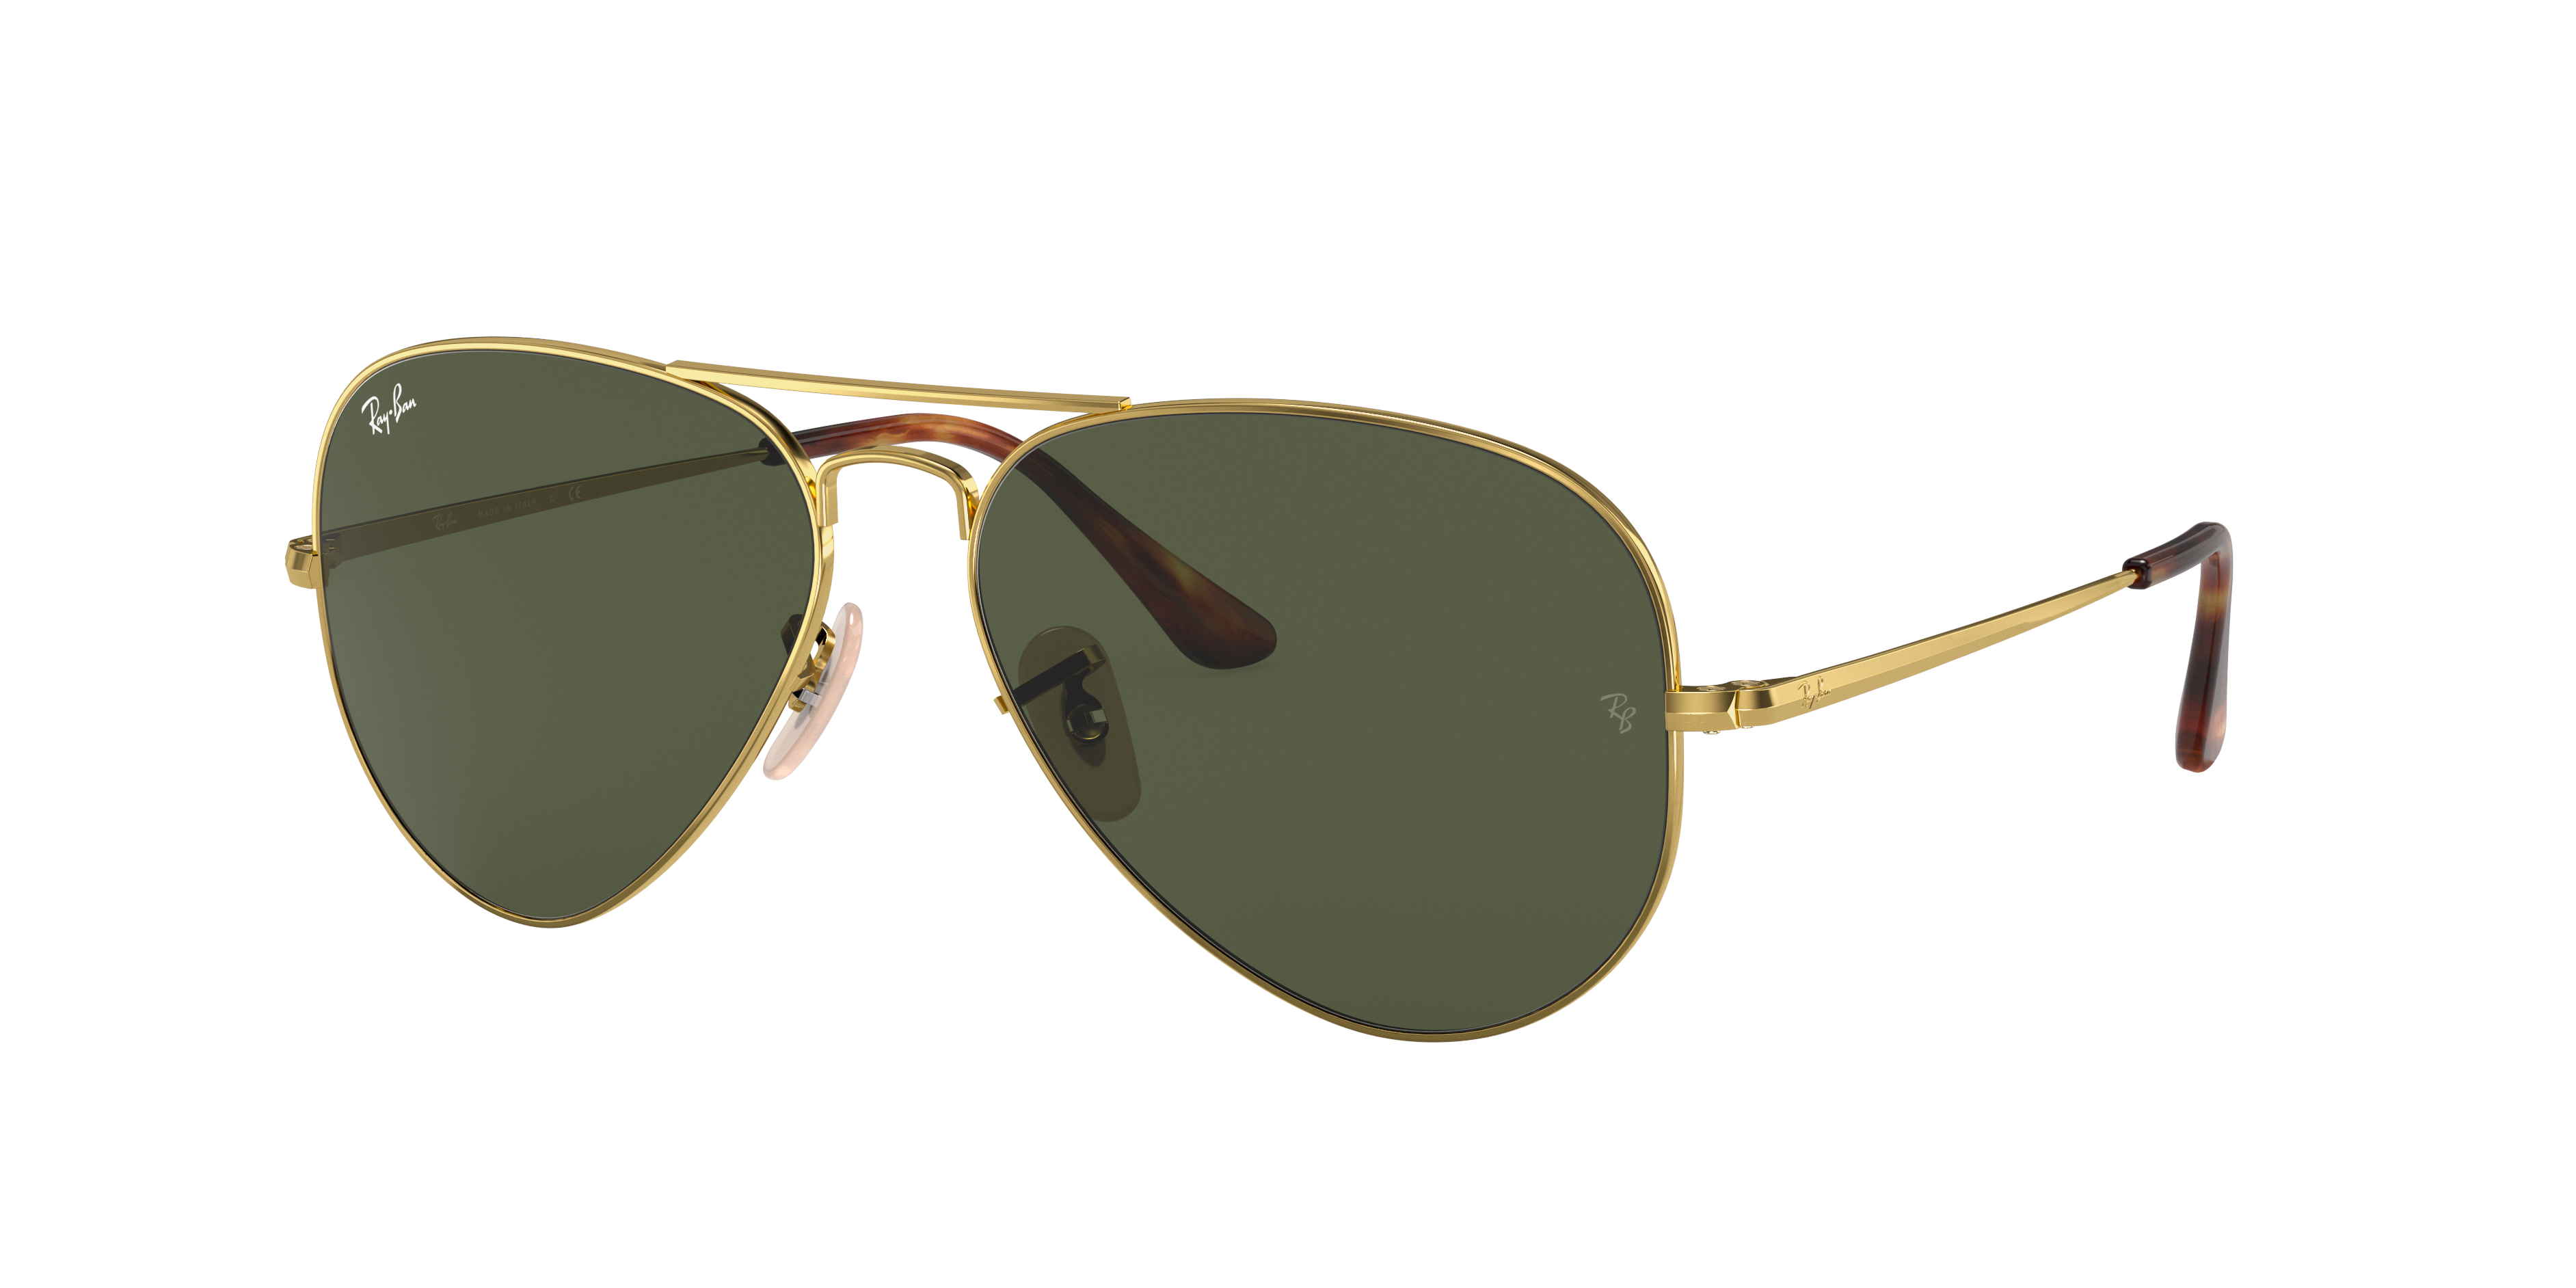 Ray-Ban Rb3689 Gold, Green Lenses - RB3689